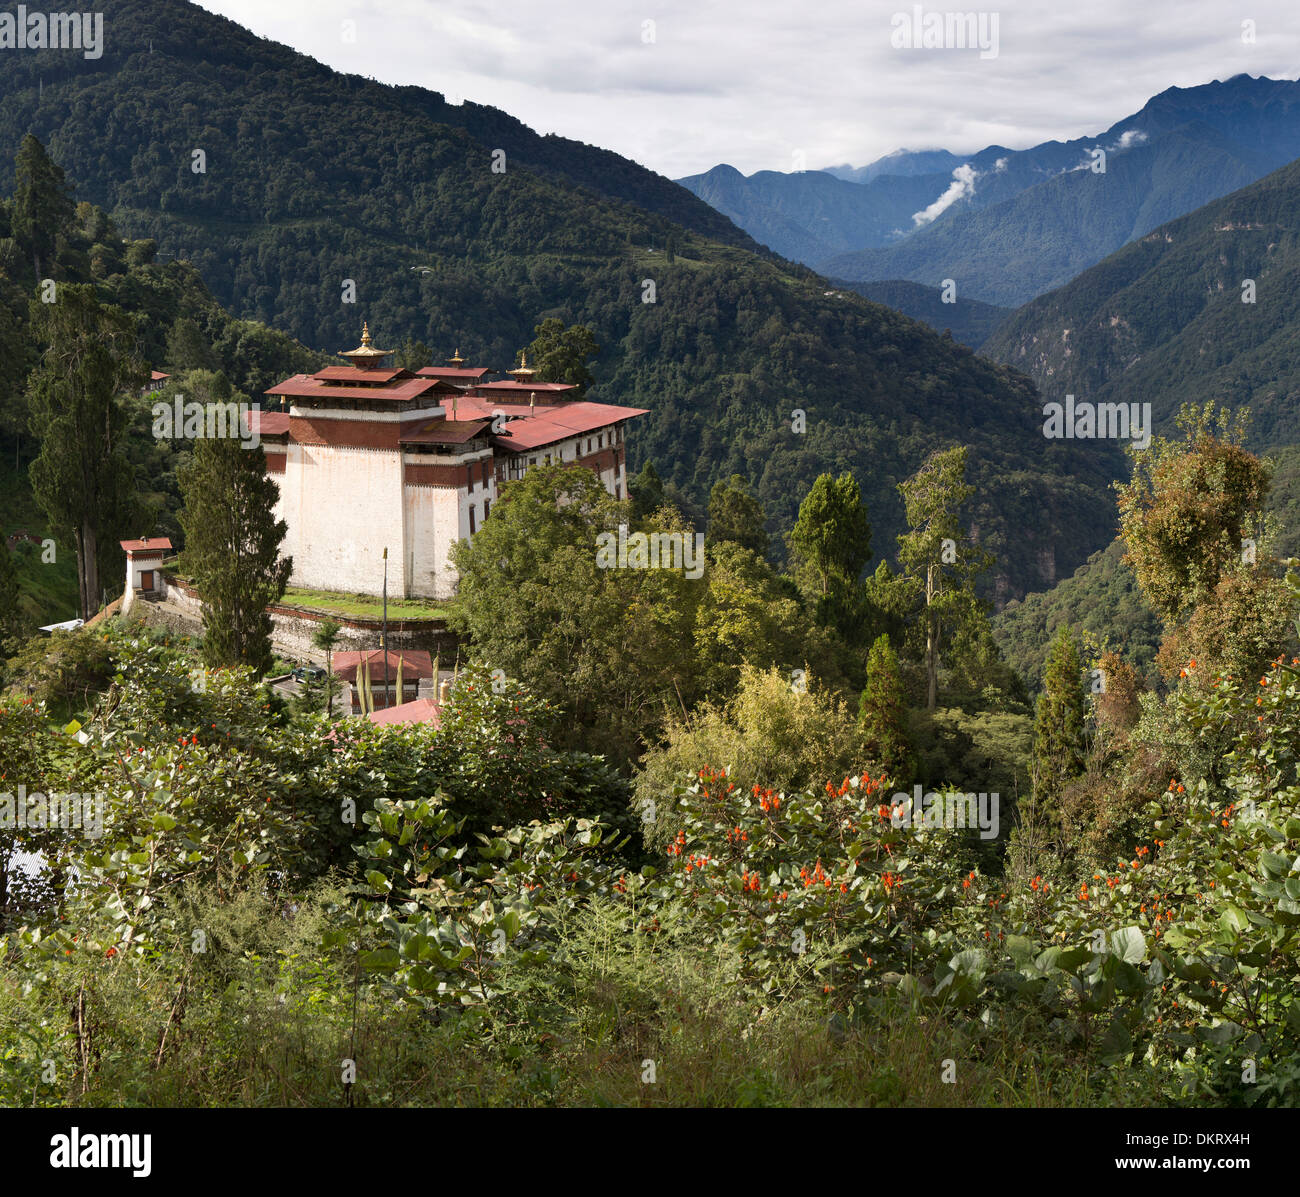 Bhutan, Trongsa, Dzong overlooking Mangde River Valley - Stock Image